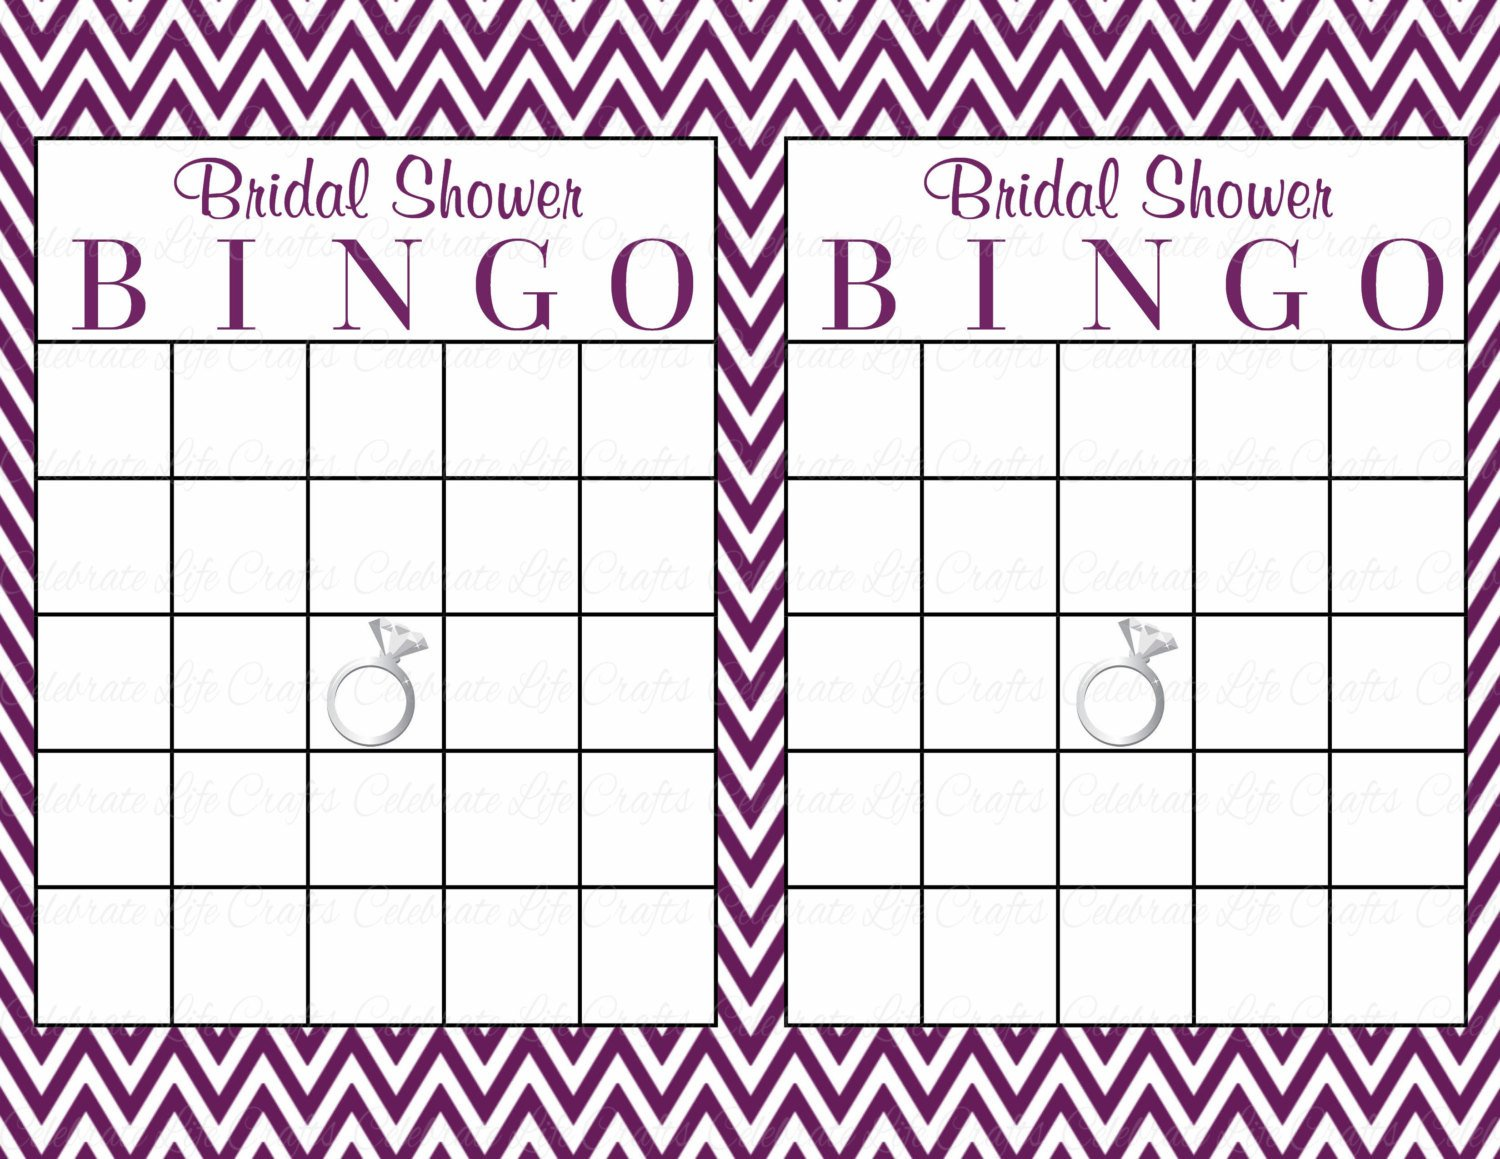 Bridal Shower Bingo Template 60 Bridal Bingo Cards Blank & 60 Prefilled Cards Printable